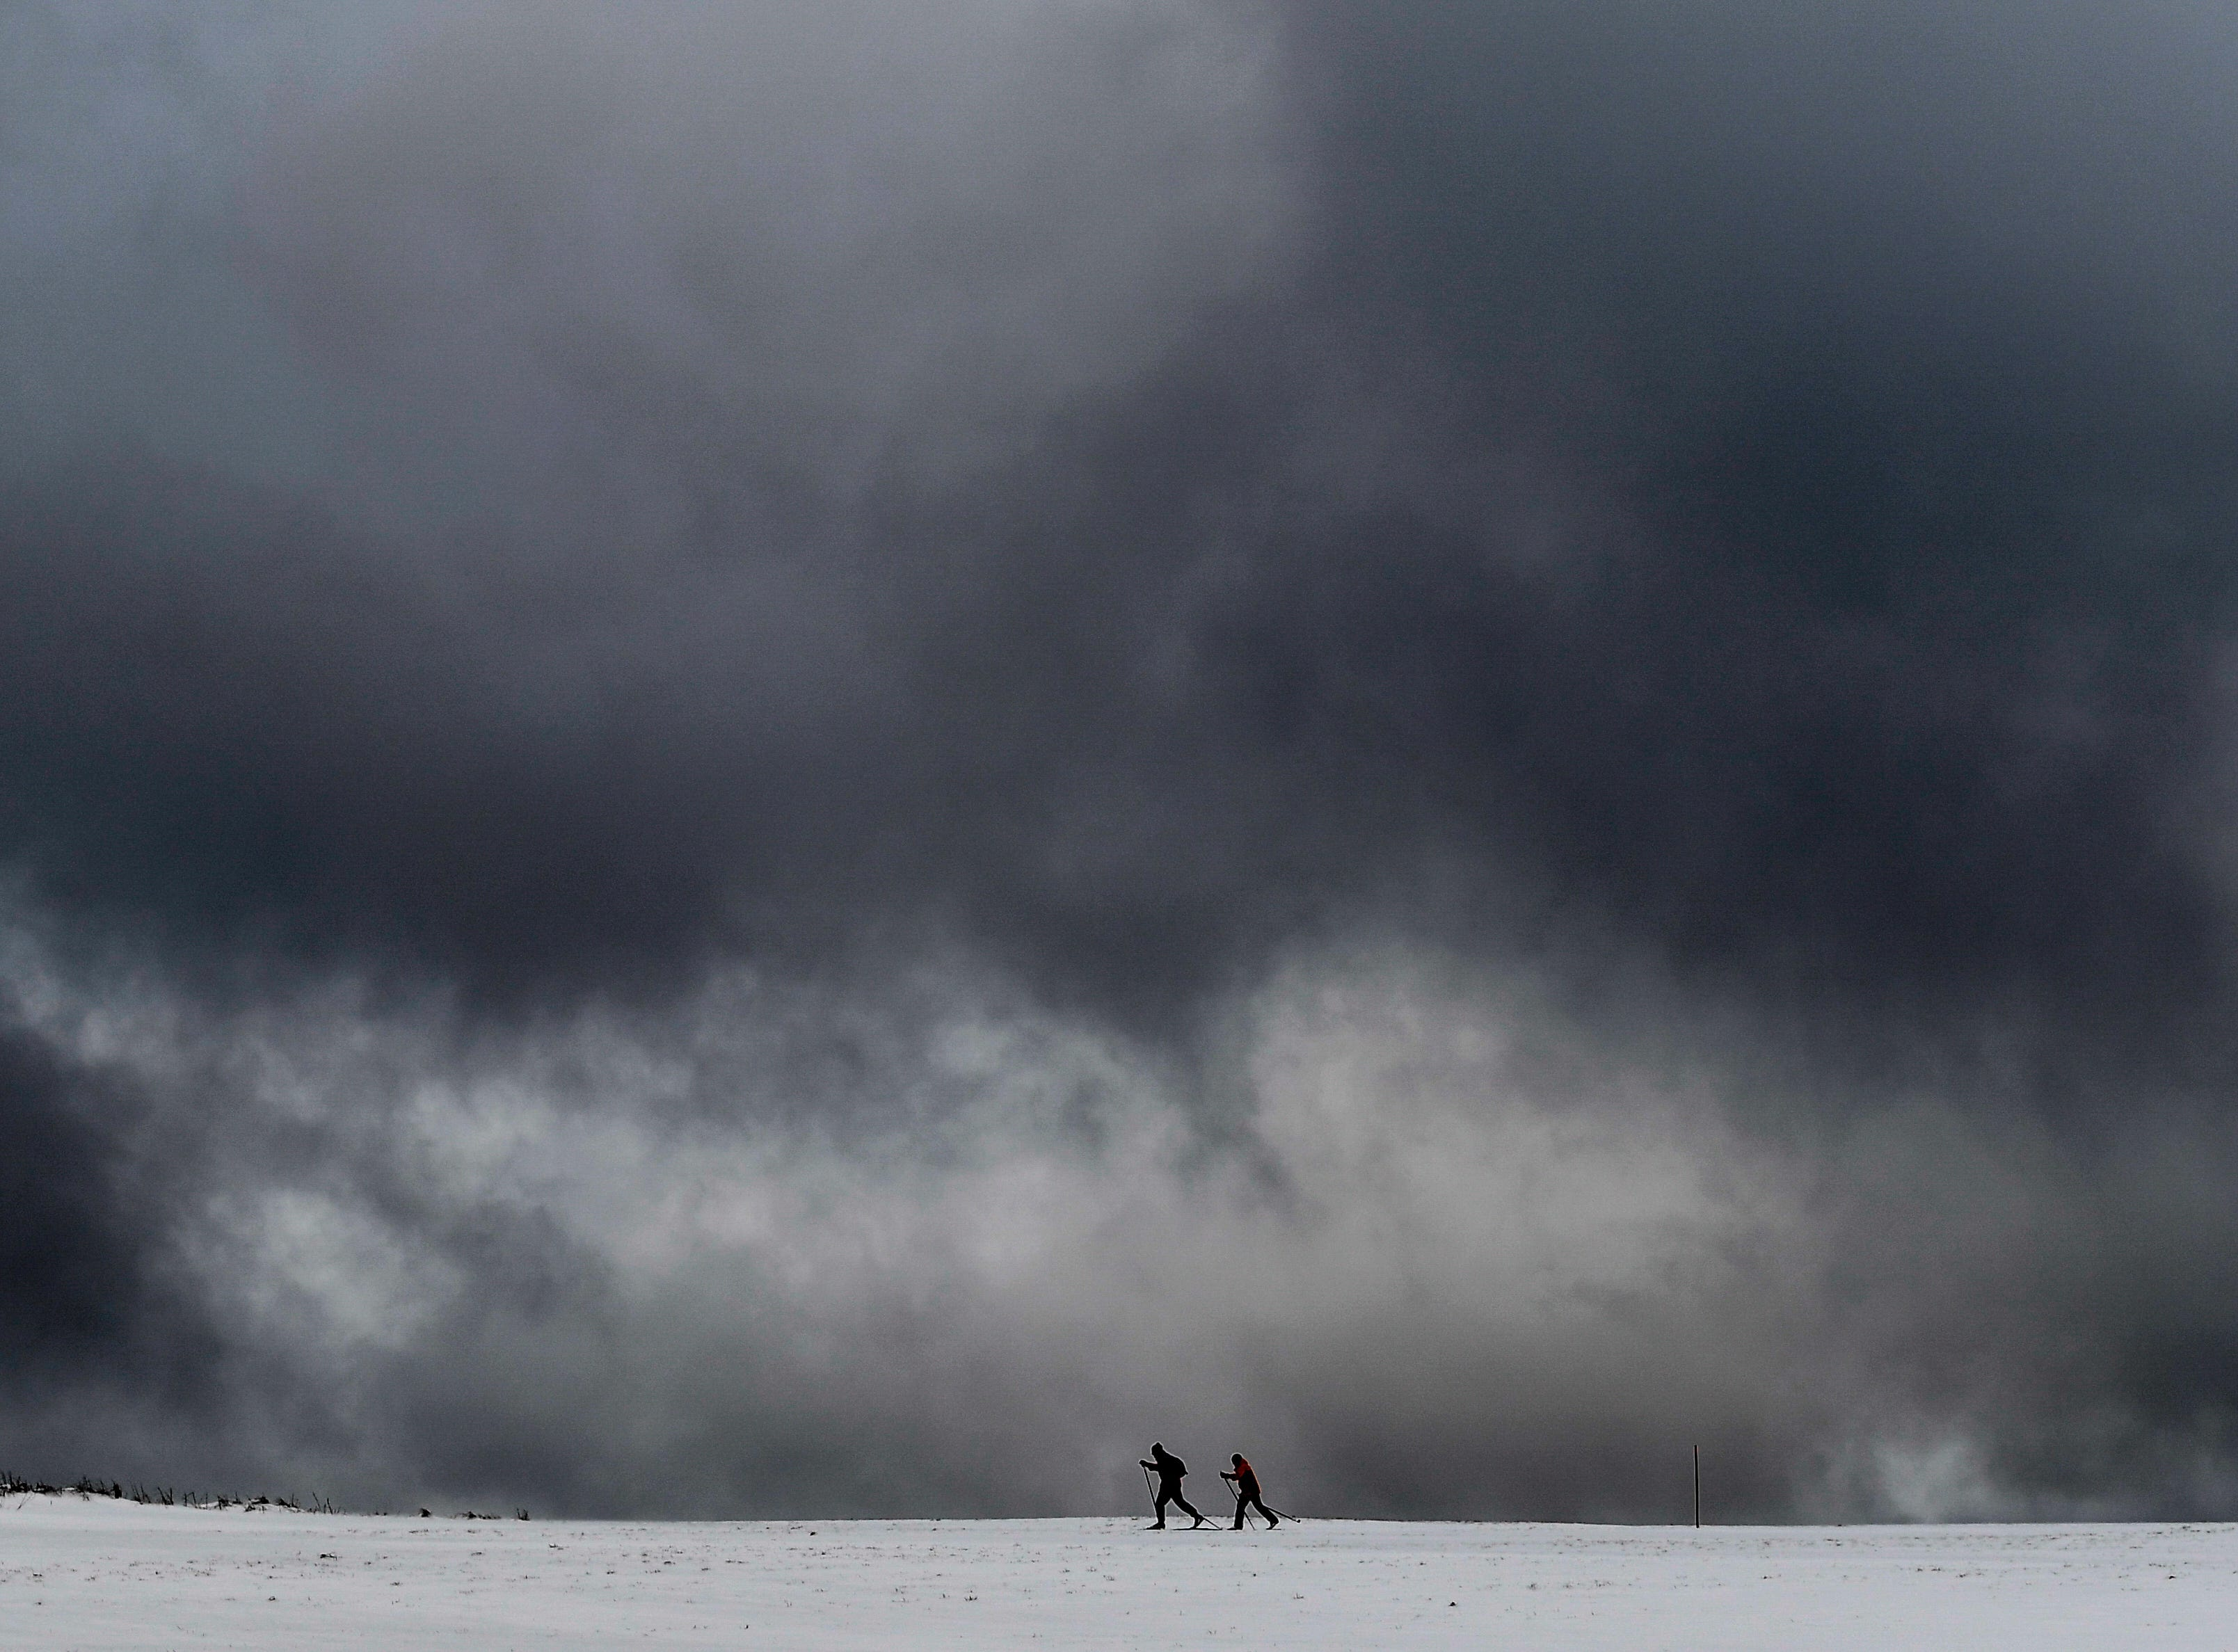 Cross country skiers move on their trip across a snow covered field of the Ore Mountains,  near Altenberg, Germany on Jan. 6, 2019.